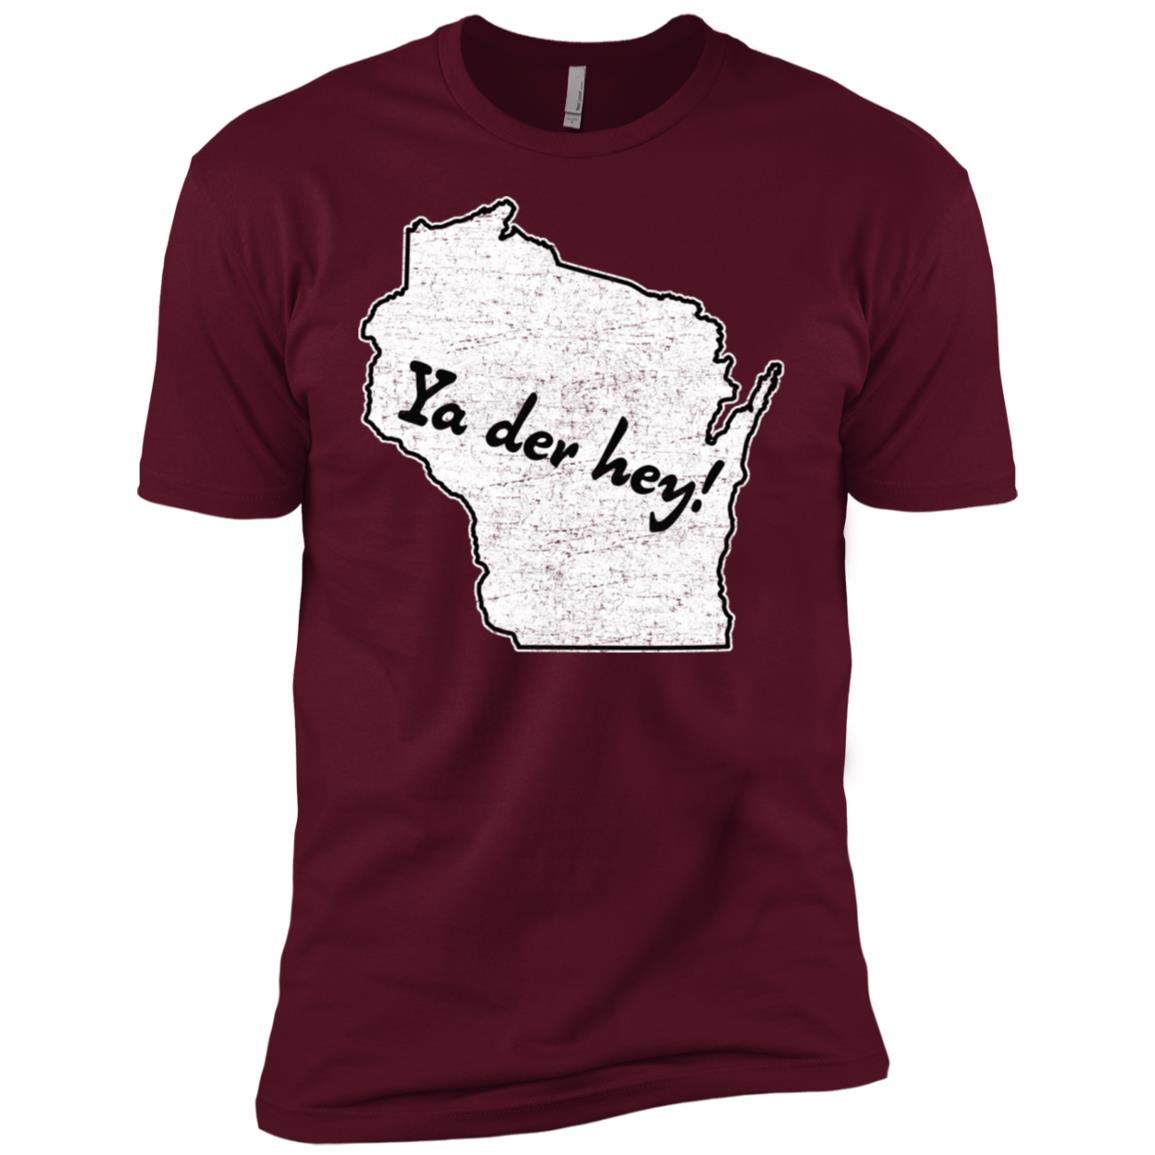 Ya der hey! Wisconsin saying – Wisco sconnie pride-1 Men Short Sleeve T-Shirt